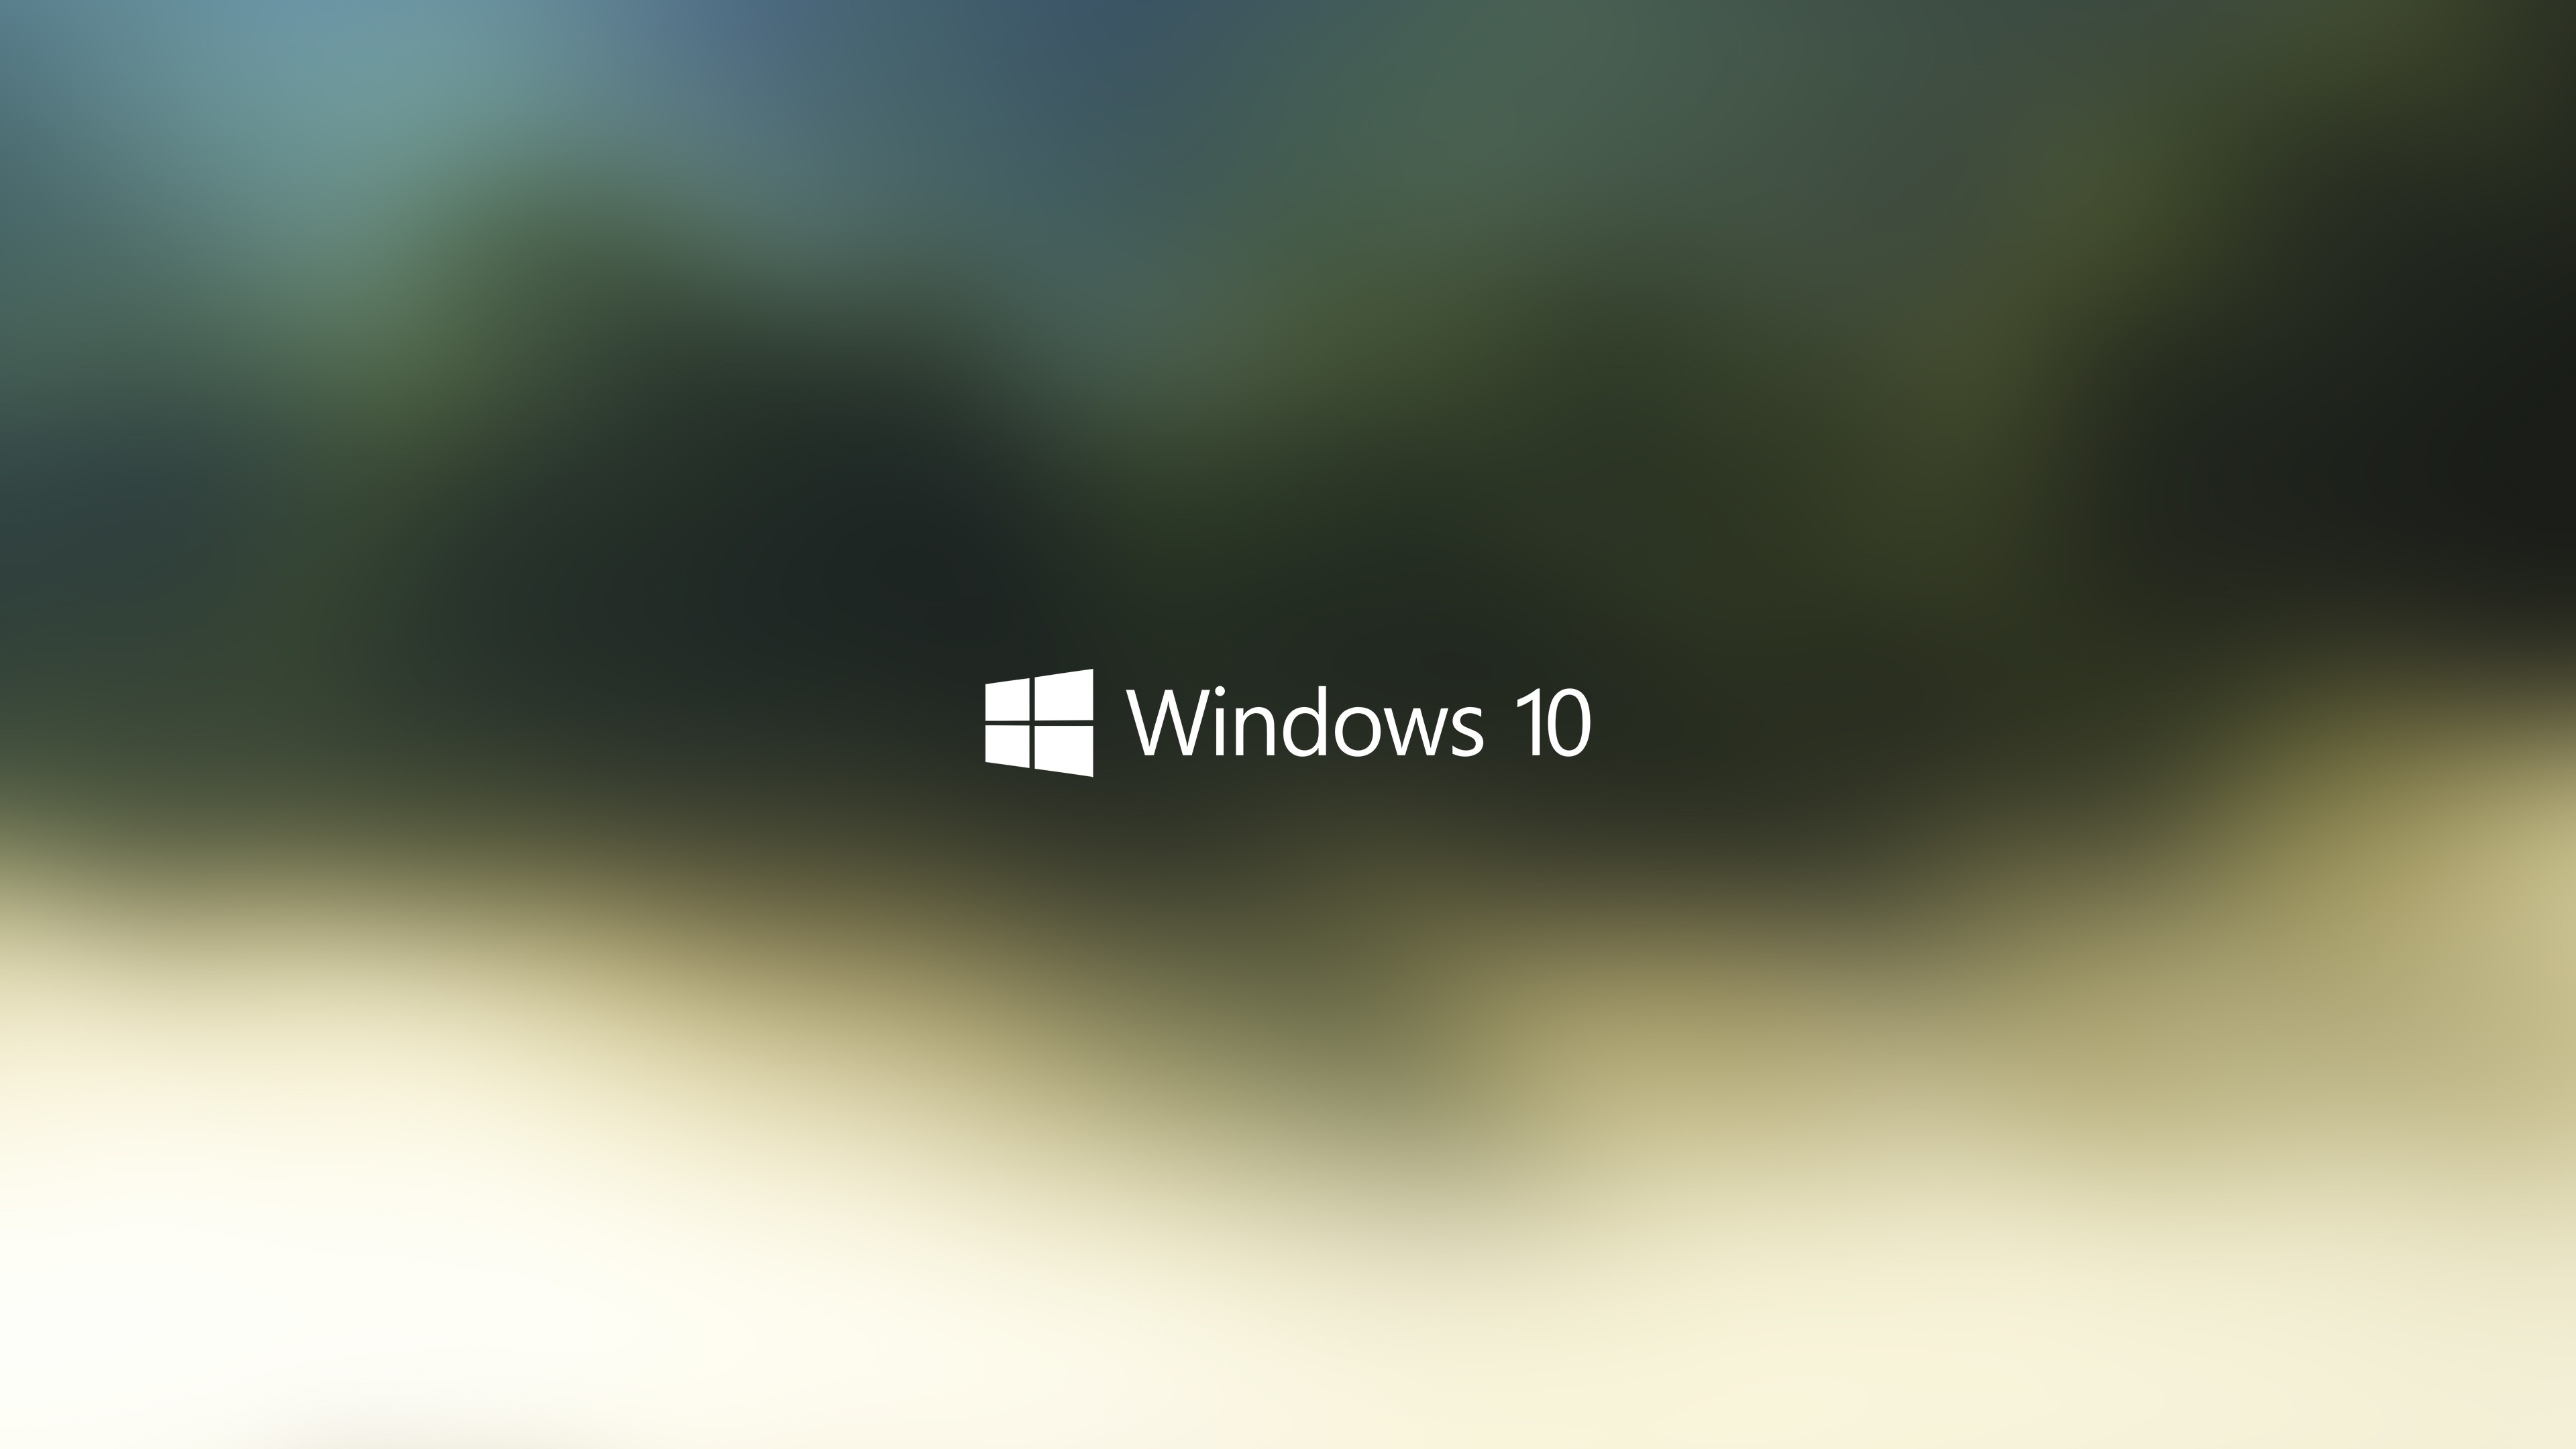 Windows 10 Blur Hd Logo 4k Wallpapers Images Backgrounds Photos And Pictures